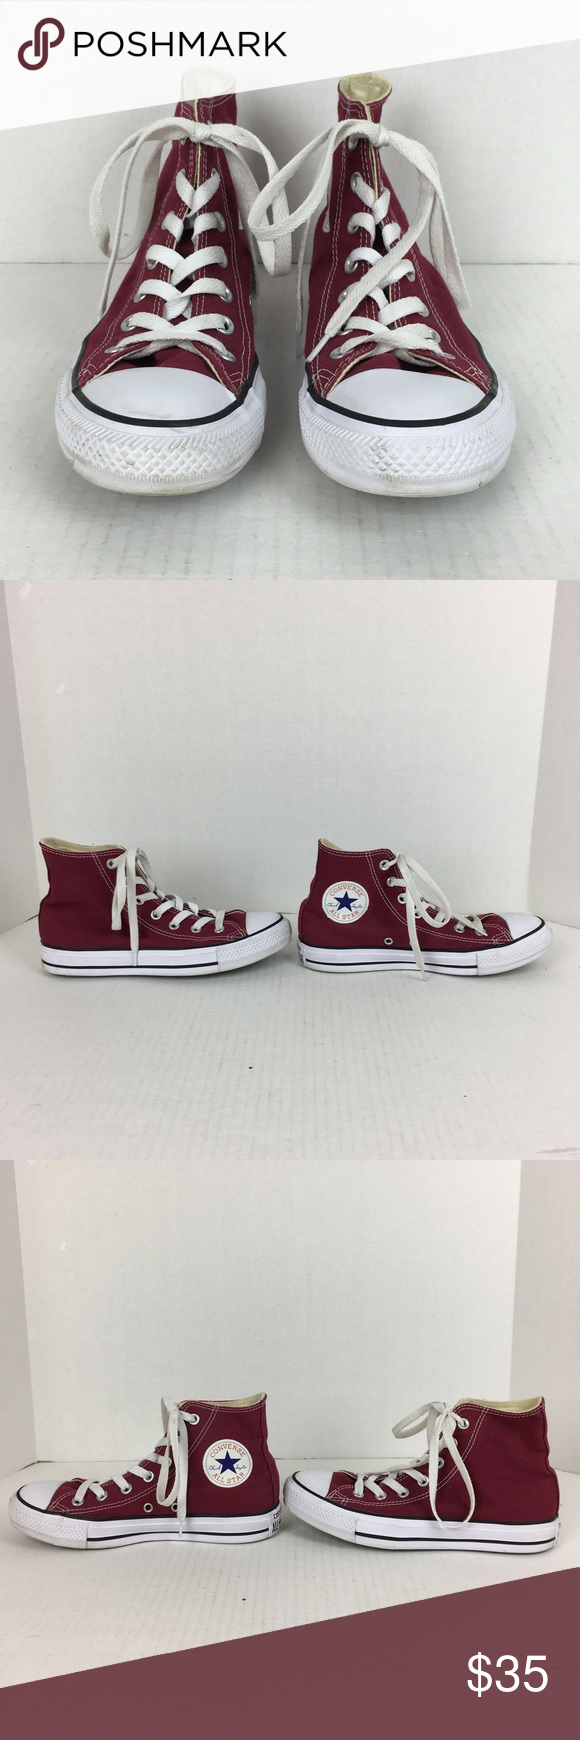 961240cb275d Burgundy Converse All Star Hightops!! Size 7. LIKE NEW!!!! Perfect for the  Aggie in your life for game day!! Converse Shoes Sneakers